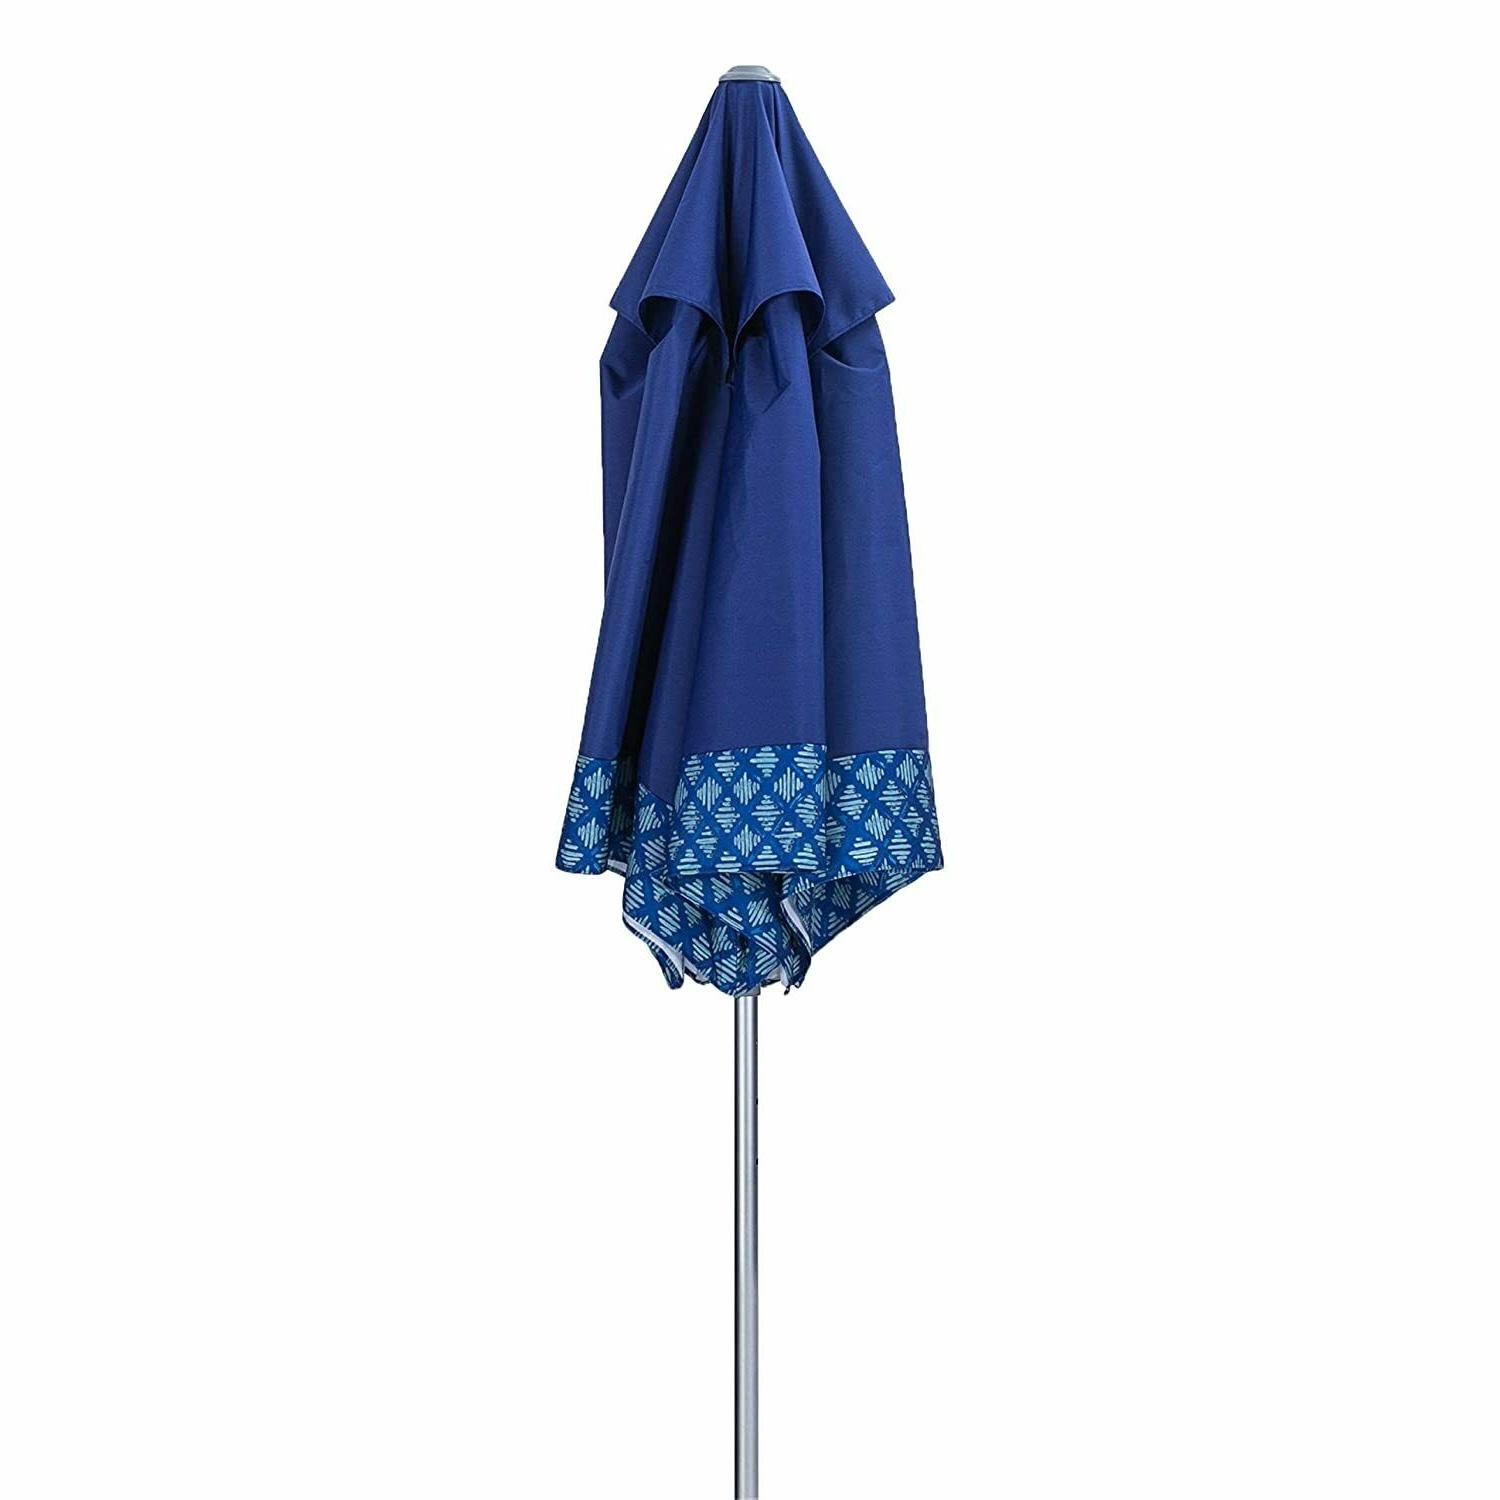 AMMSUN 8ft Umbrella with Anchor Adjustable Height